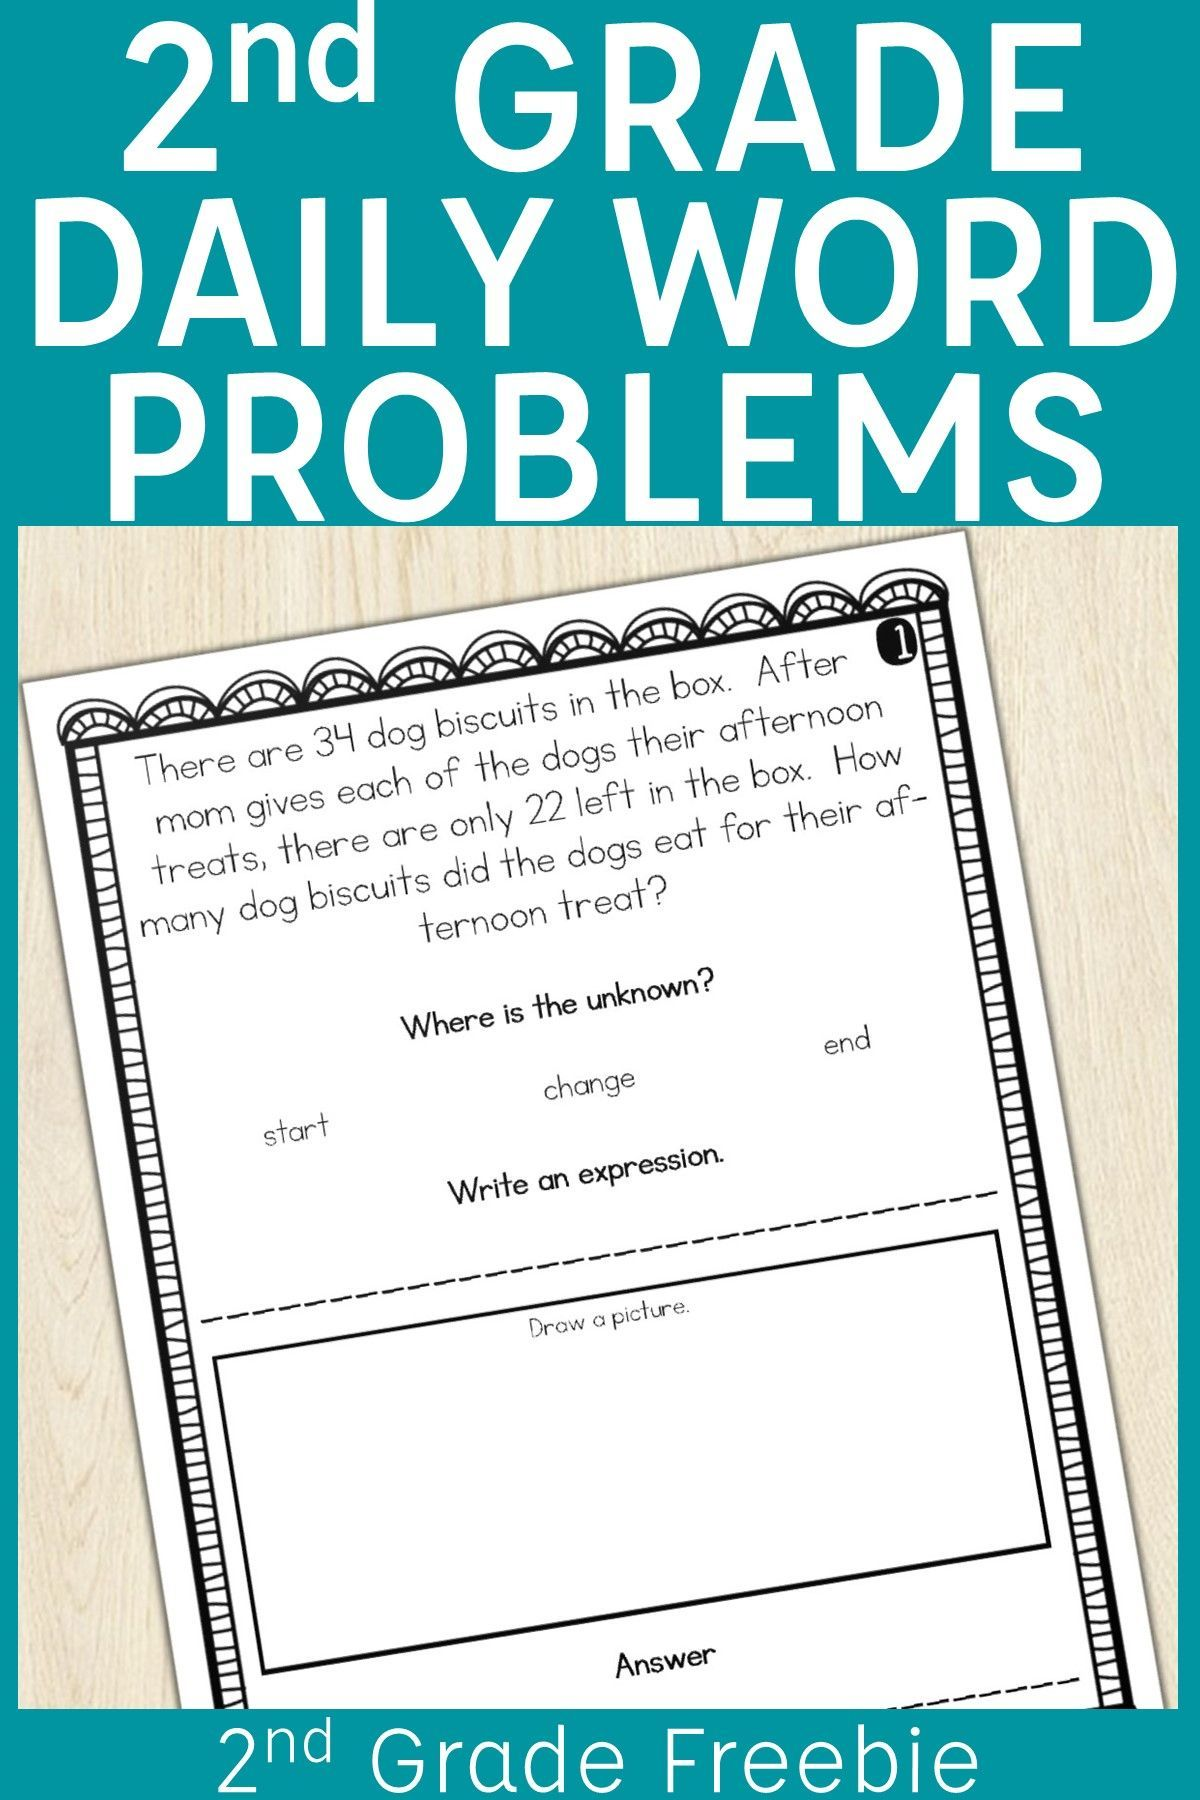 2nd Grade Word Problem Of The Day Story Problems Back To School Freebie Word Problems Math Word Problems 2nd Grade Math Worksheets